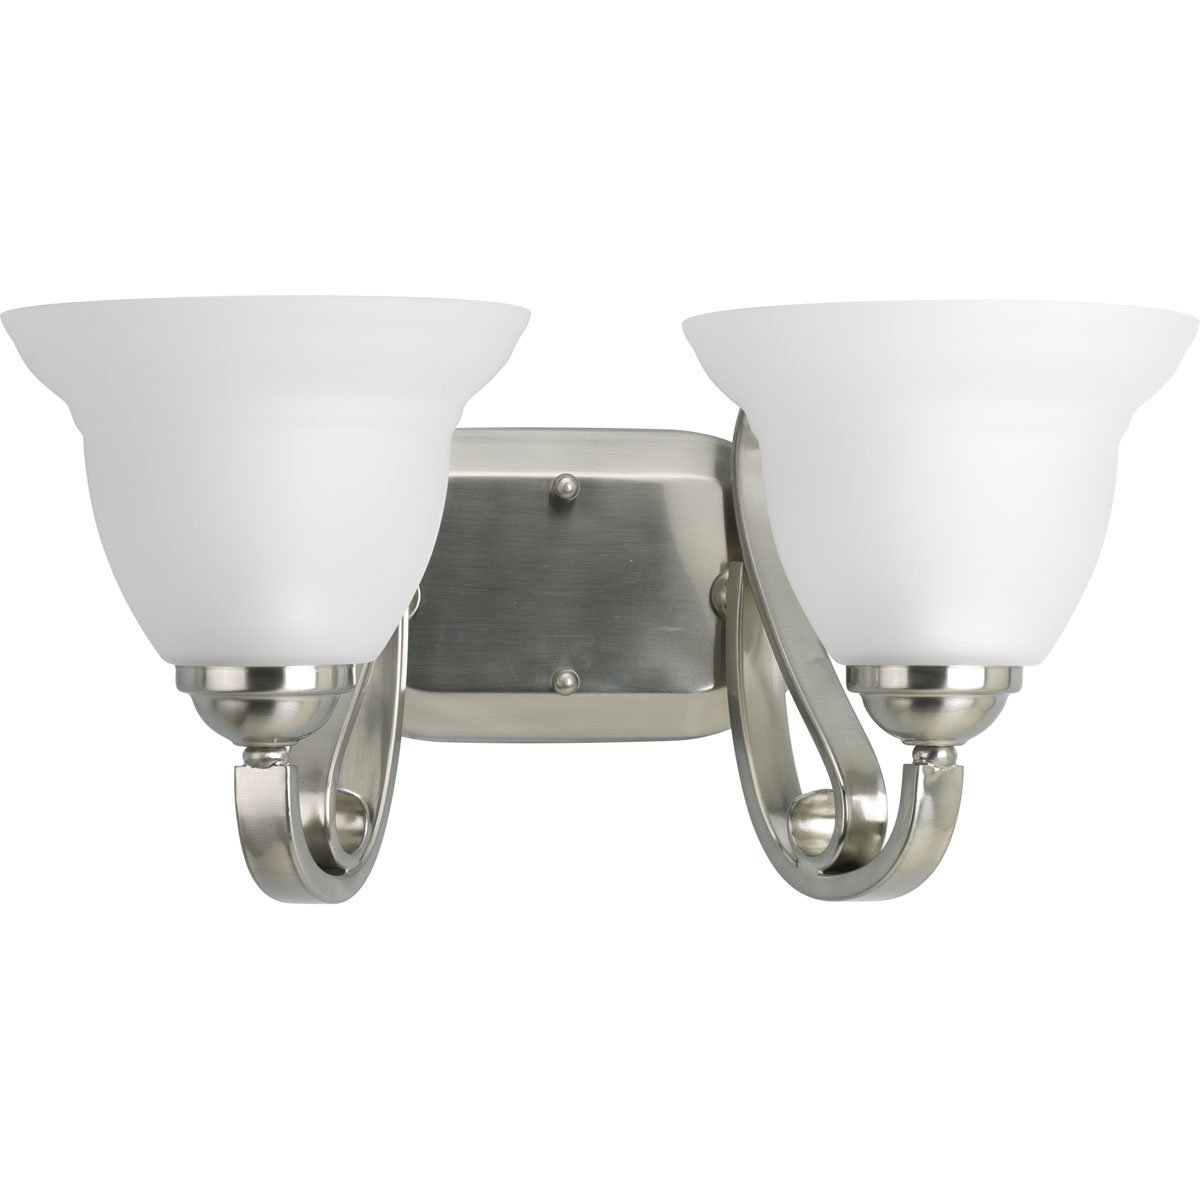 Progress Lighting P2882-09 2-Light Bath Bracket with Etched White Glass, Brushed Nickel